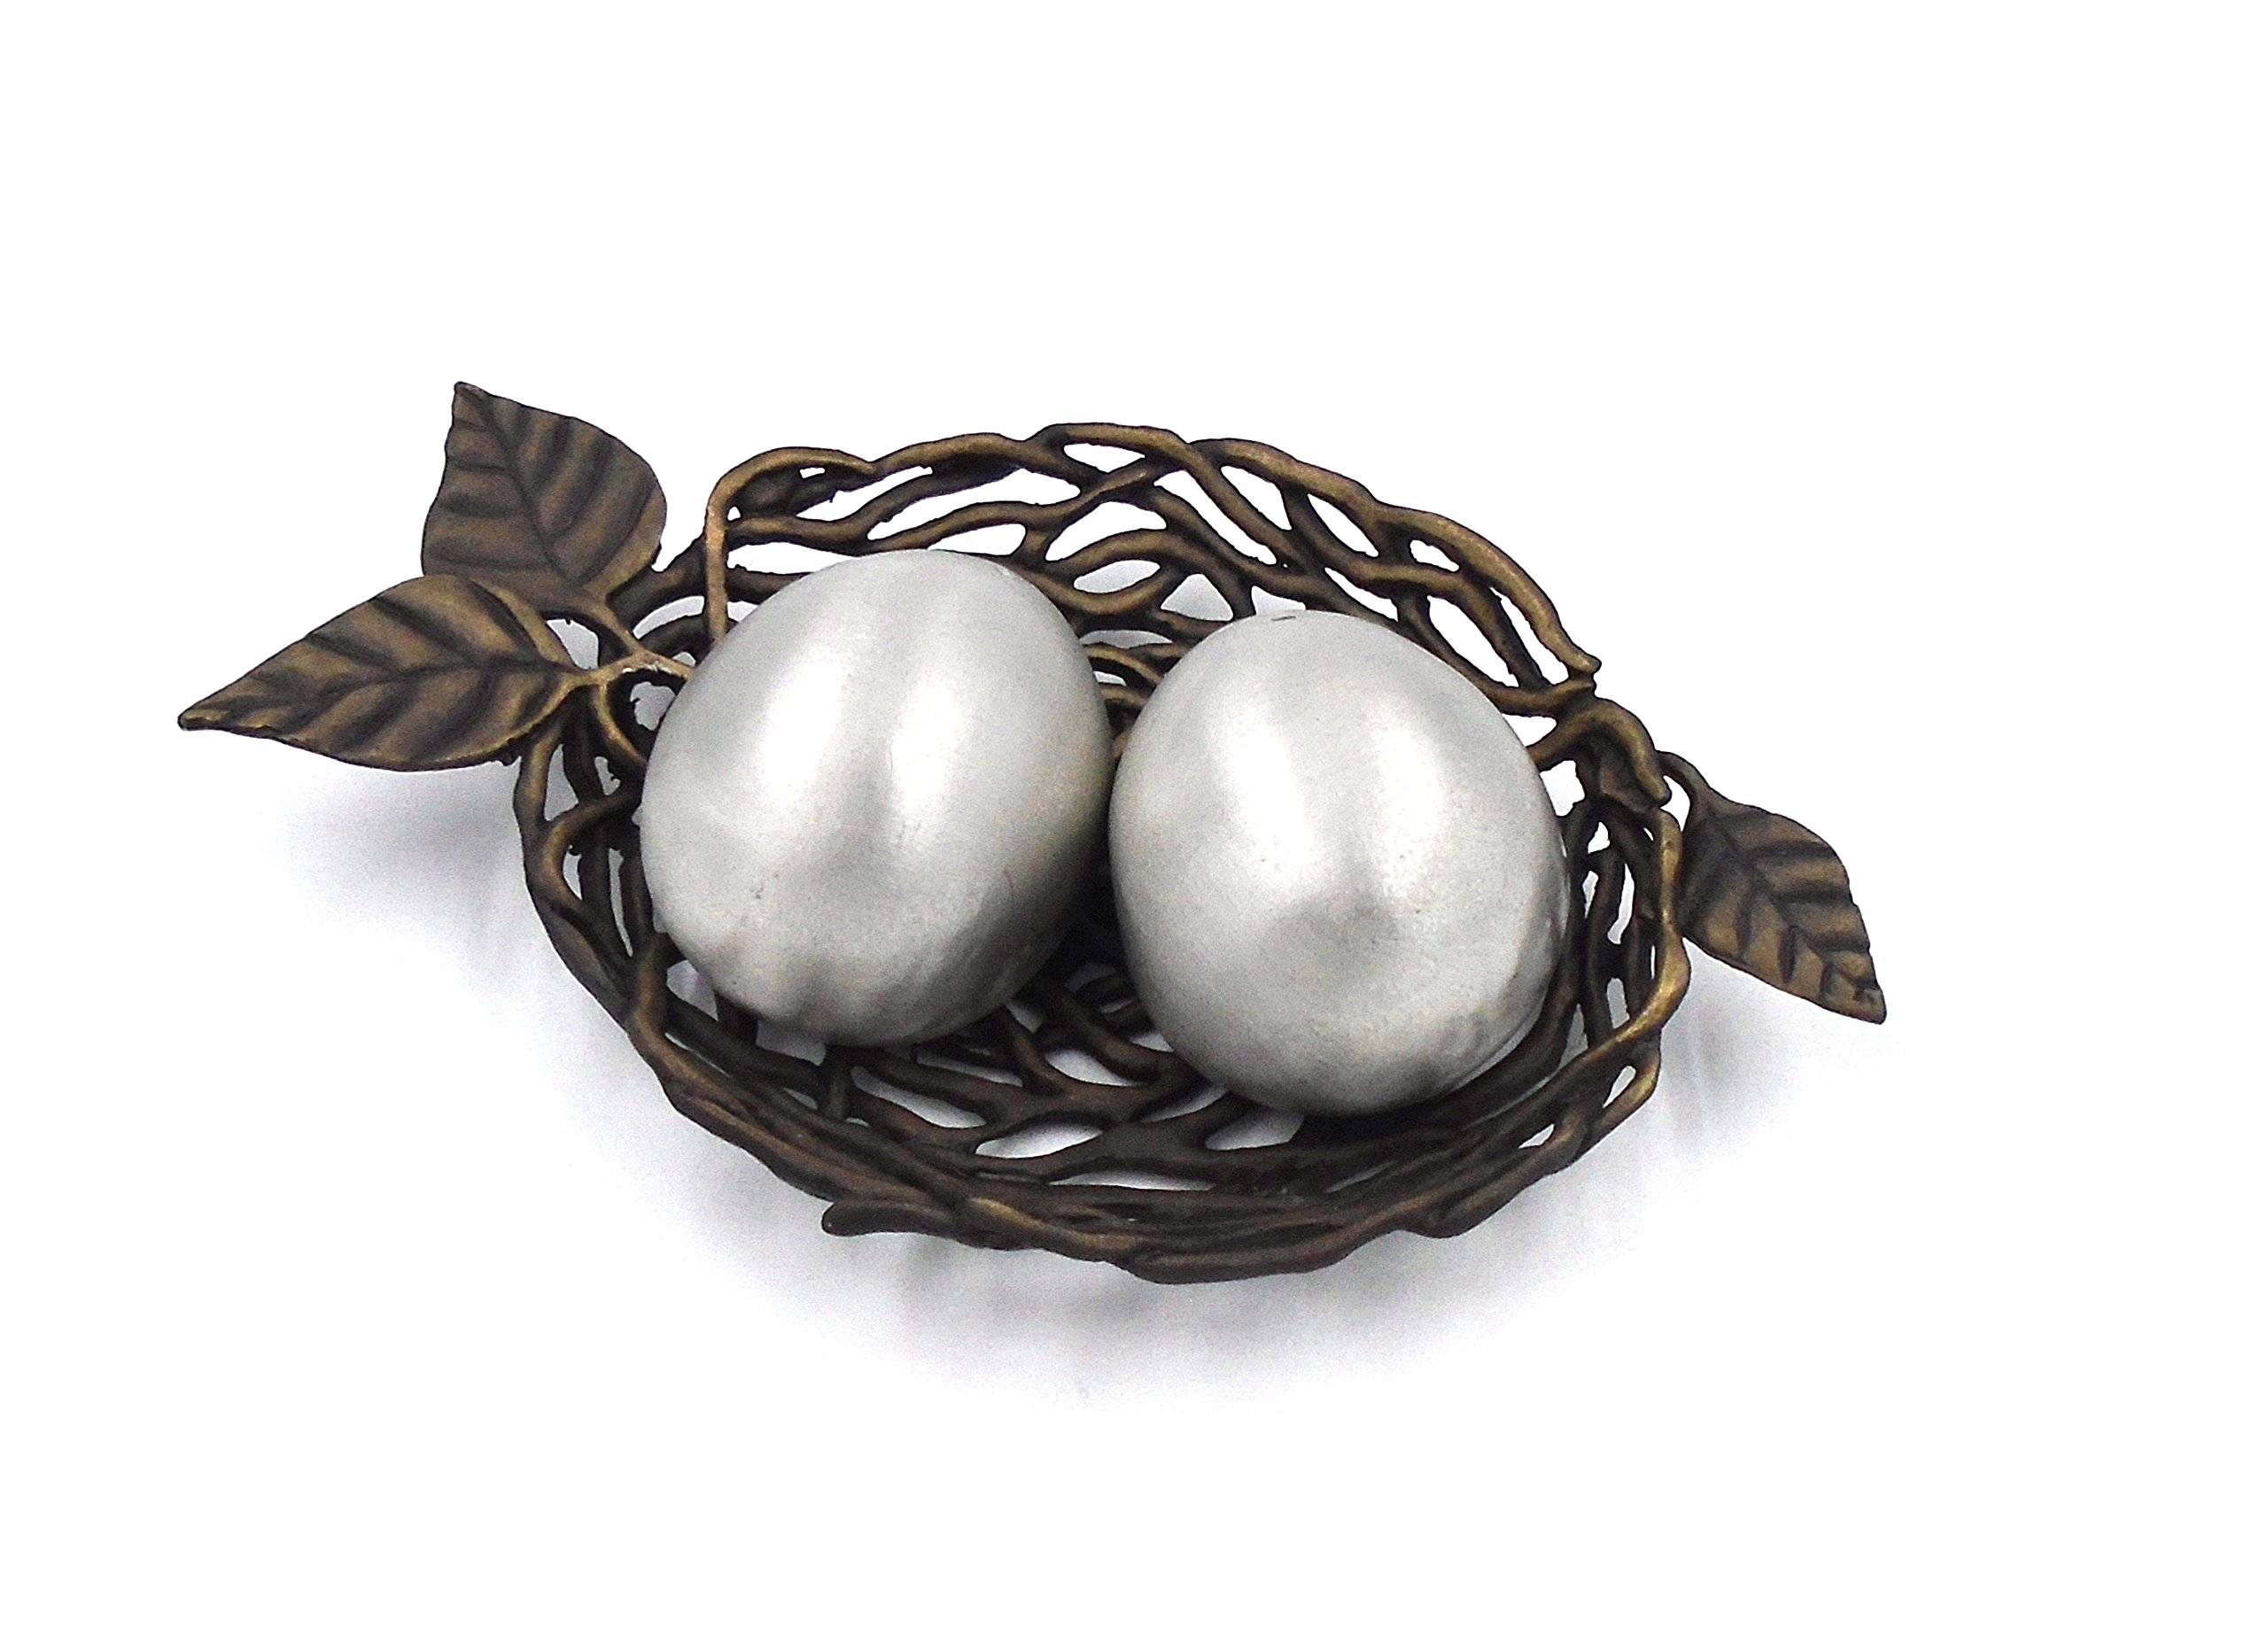 ''Bird's Nest with Eggs'' Salt Shakers by Michael Michaud for Silver Seasons Table Art